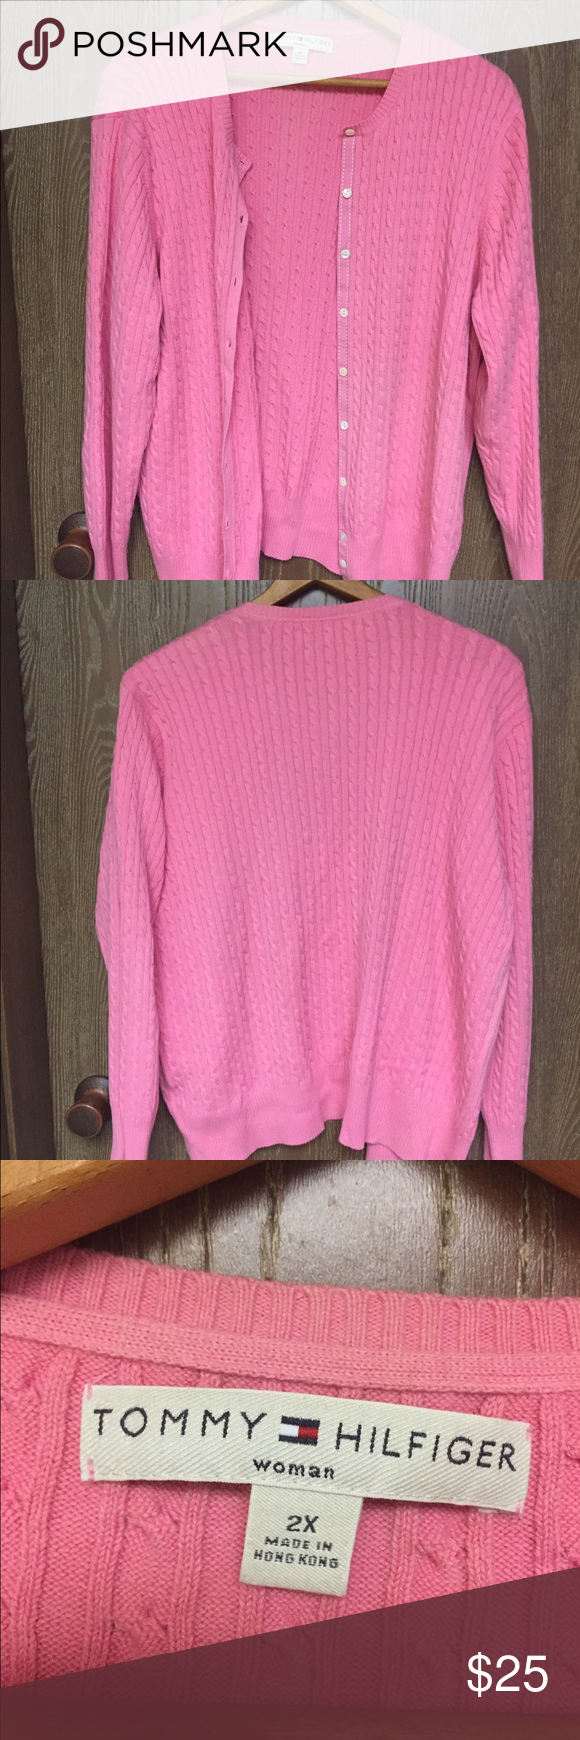 Tommy Hilfiger Sweater Women's 2x pink button up sweater Tommy ...